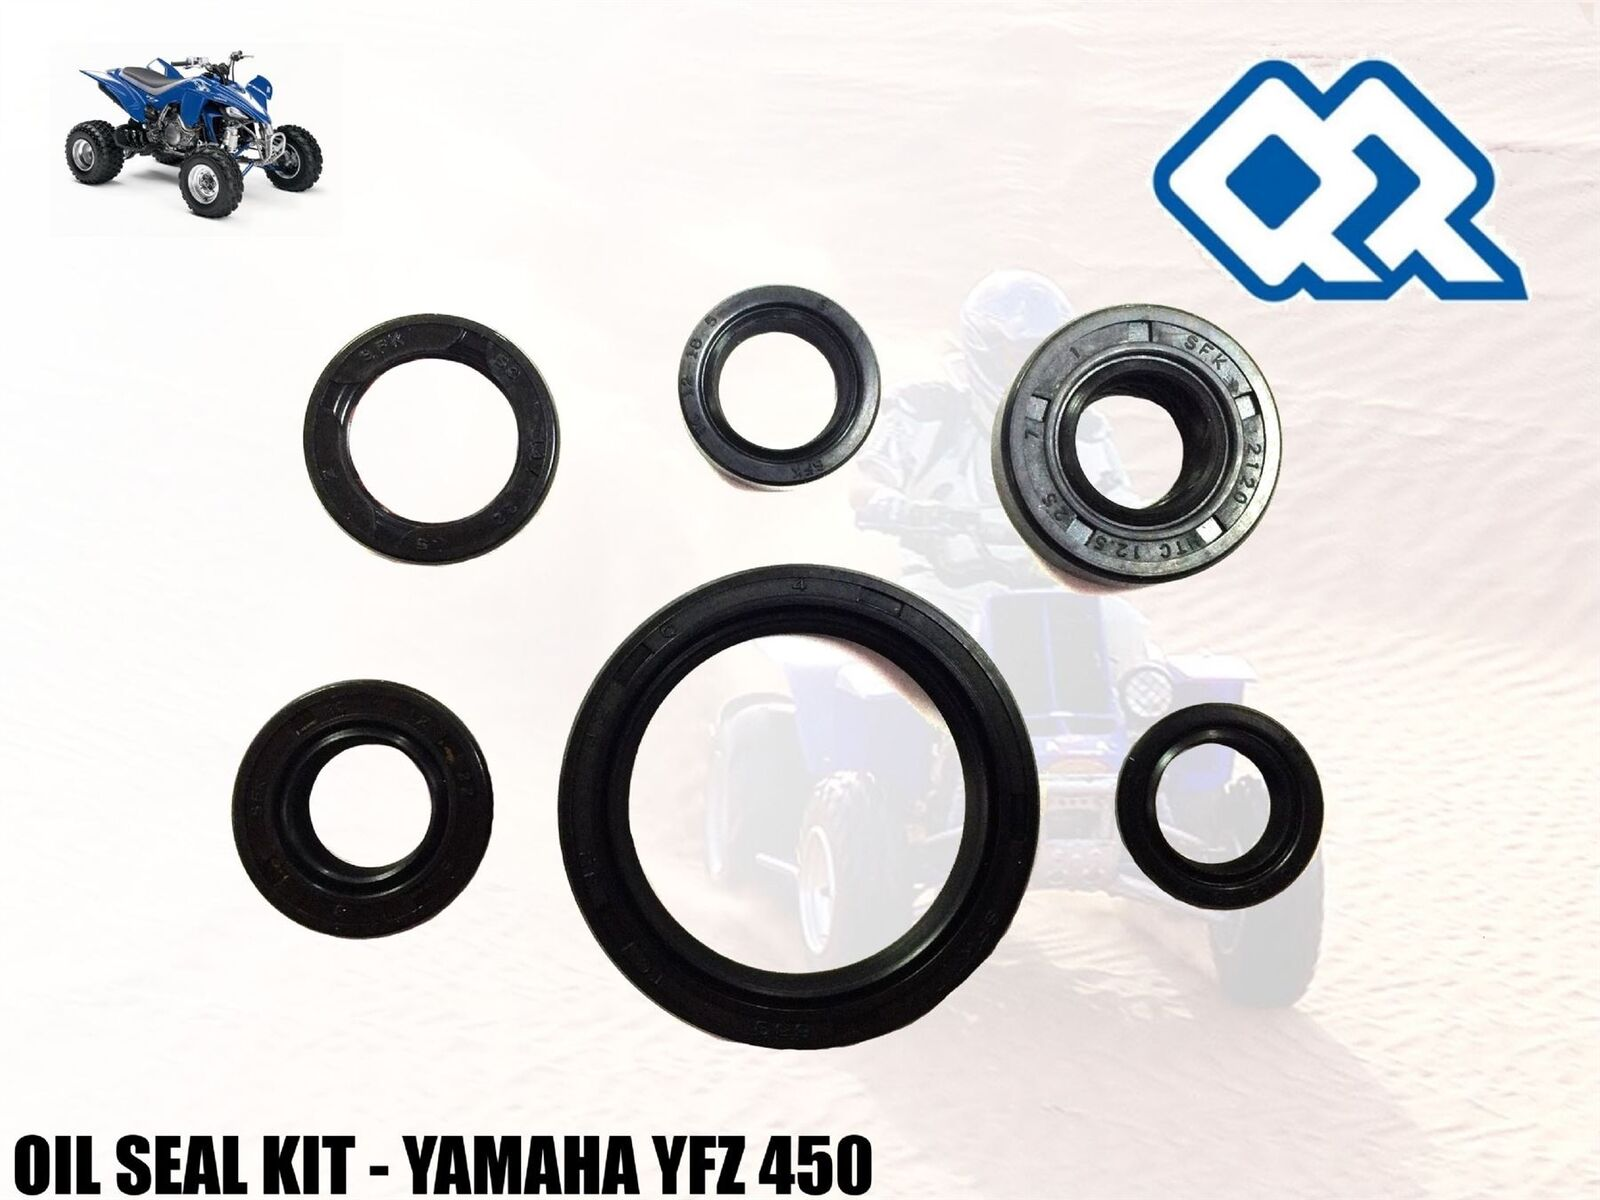 High Quality Oil Seal Kit Yamaha Yfz 450 Quad Atv All Years Ebay Wiring Harness Norton Secured Powered By Verisign